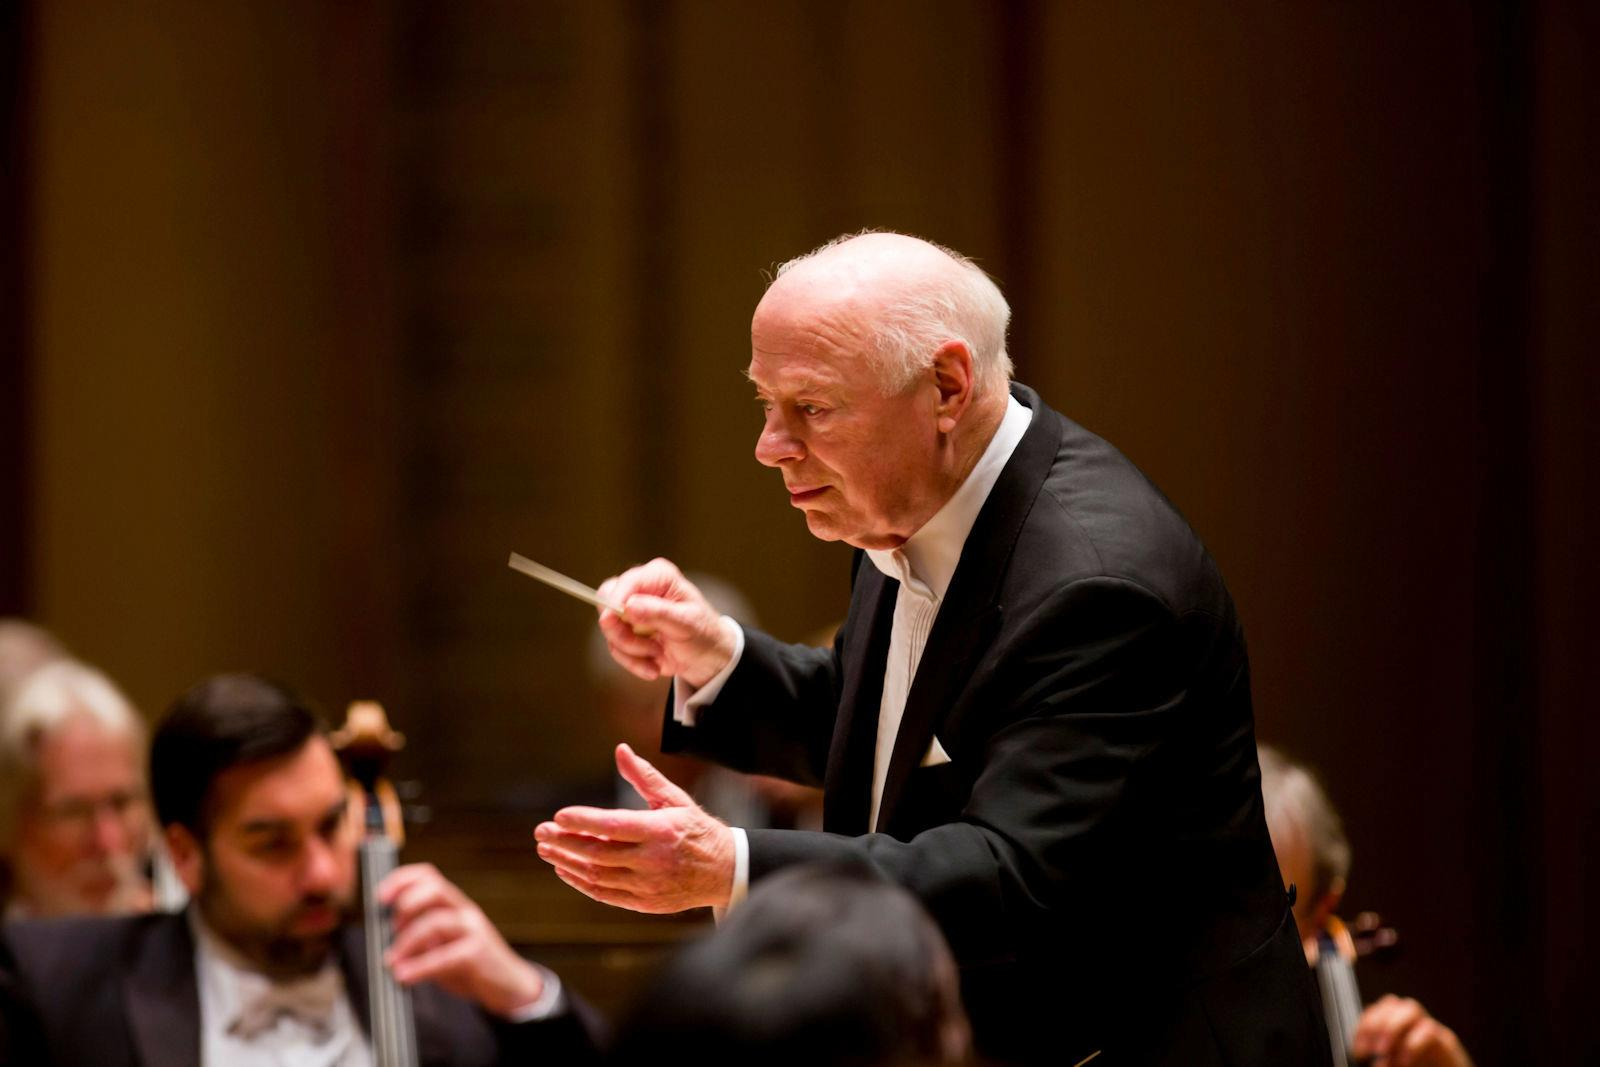 Haitink and the Vienna Phil